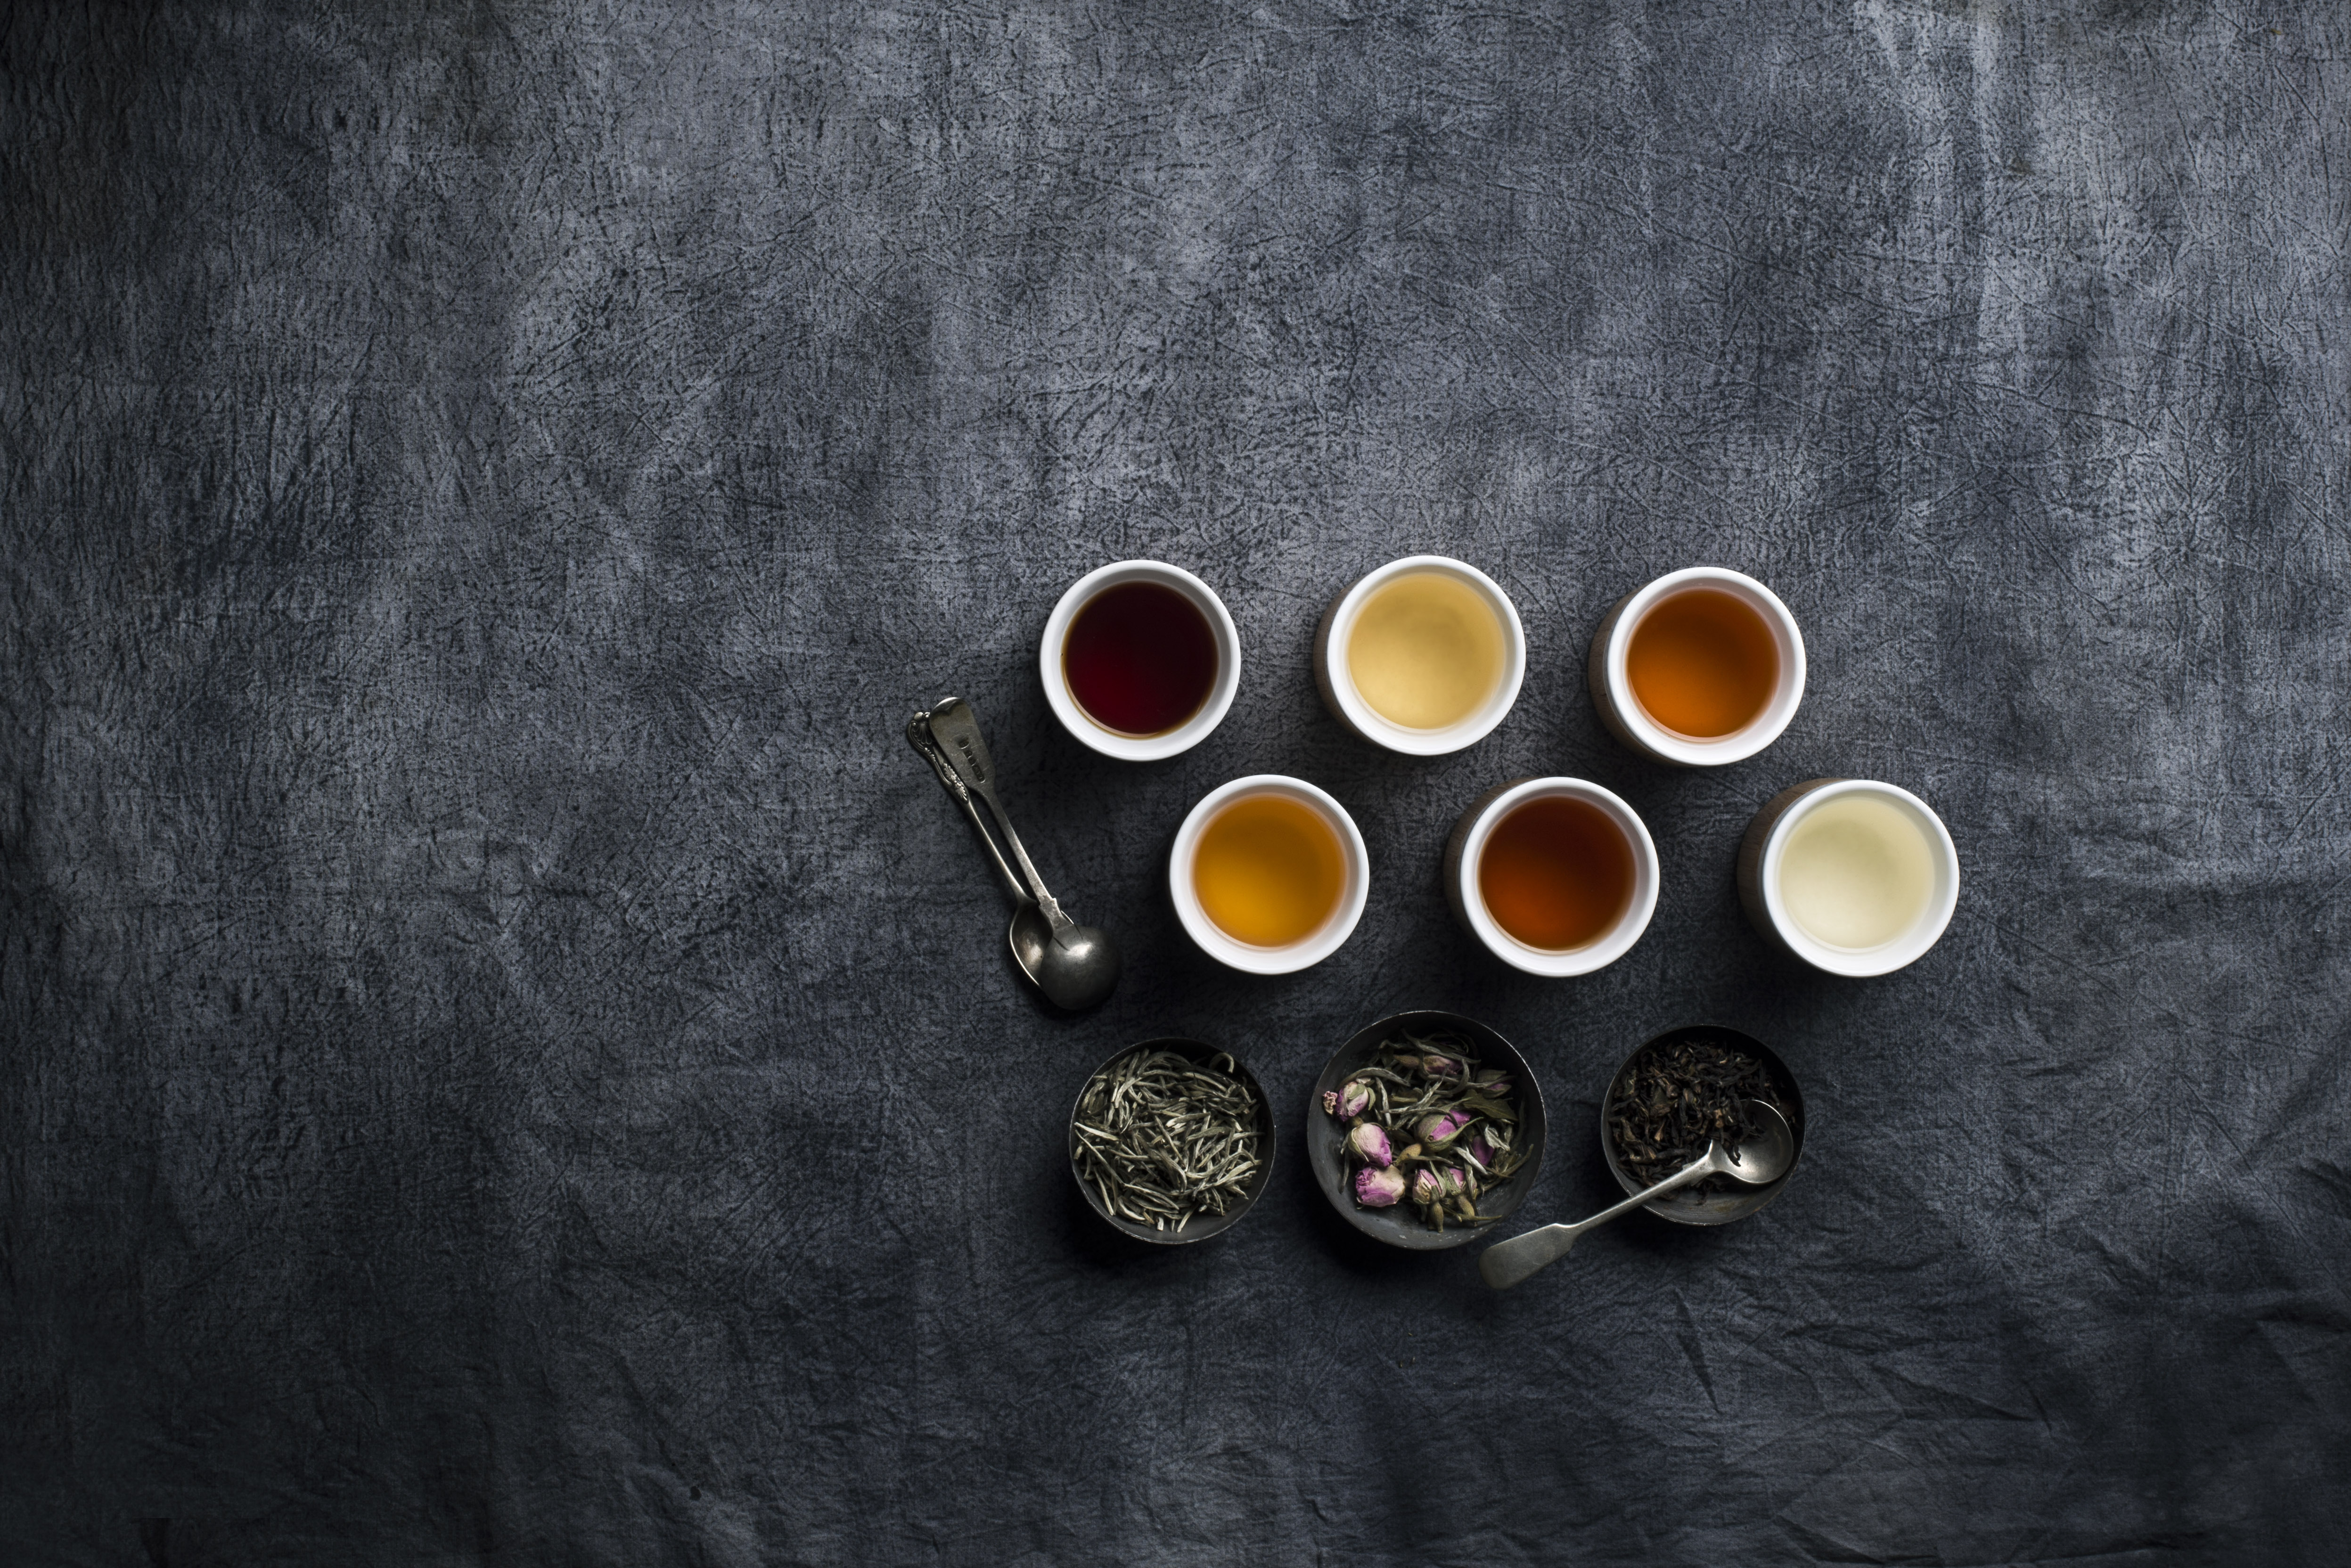 Delicate flavours come alive in single-origin teas